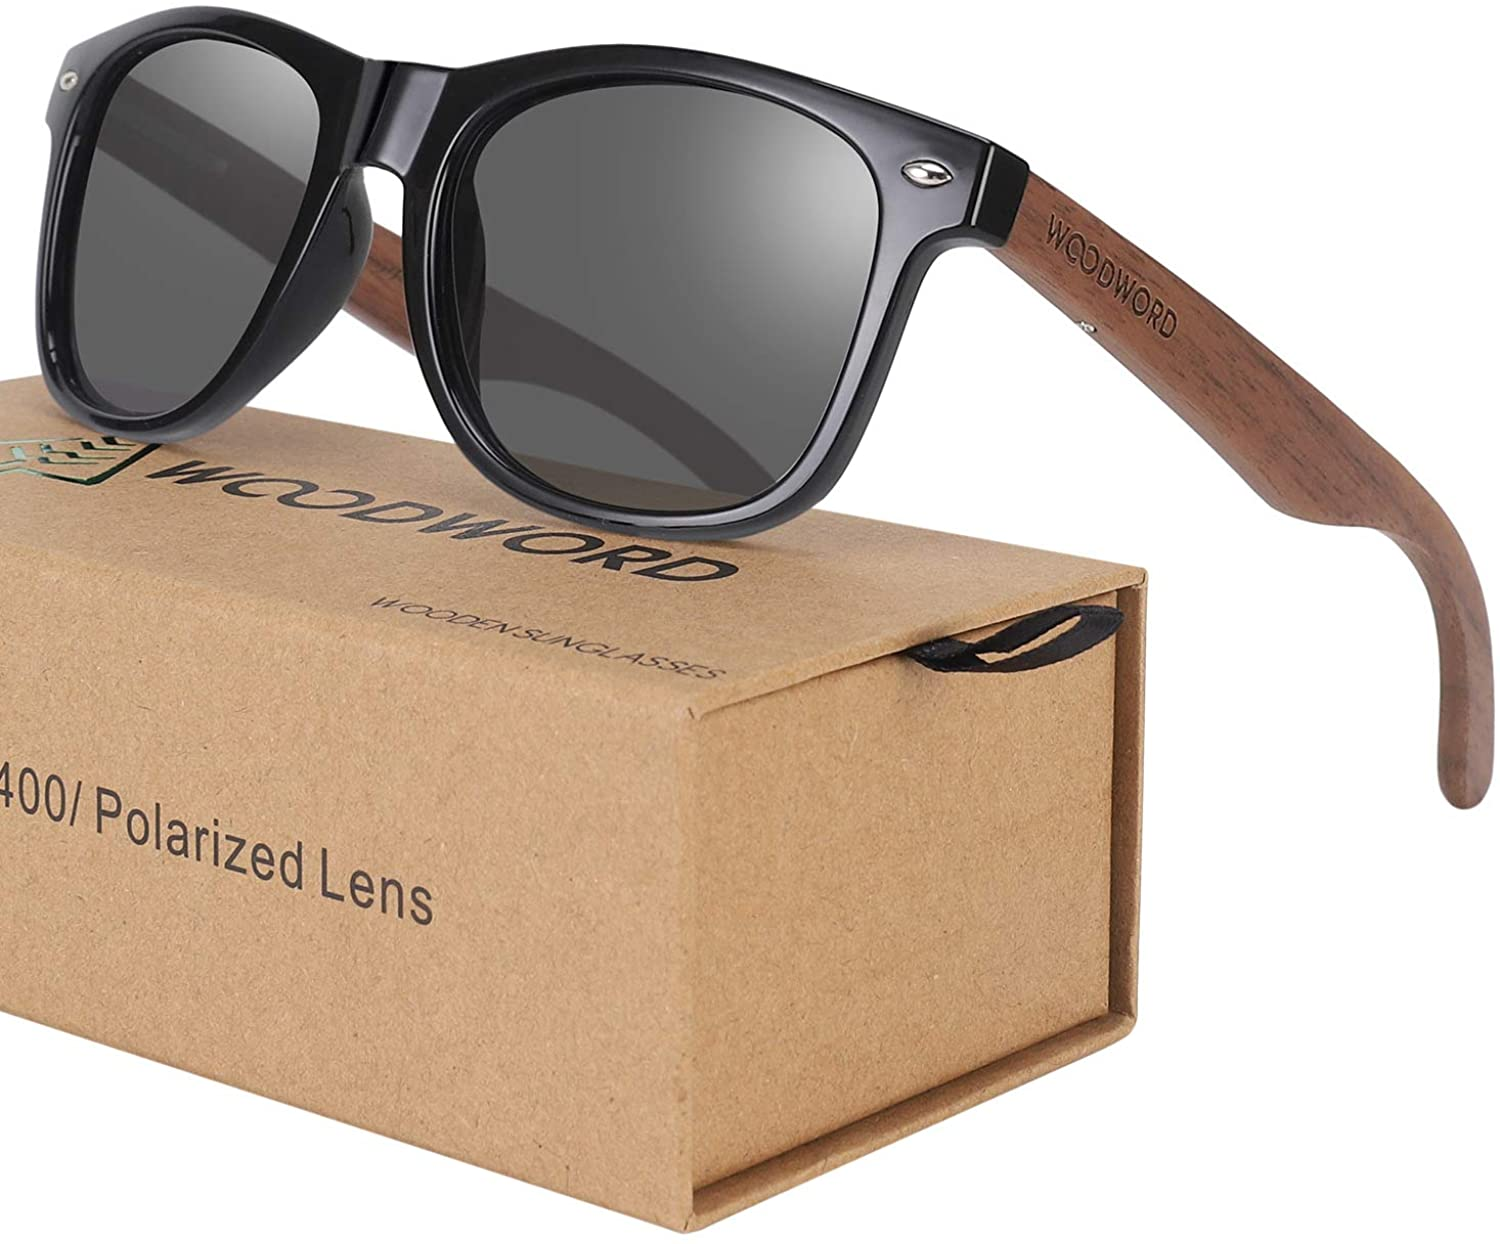 Wood Sunglasses for Men and Women - Polarized Sunglasses with Gift Case - Suitable for Fishing Driving Golf Travelling